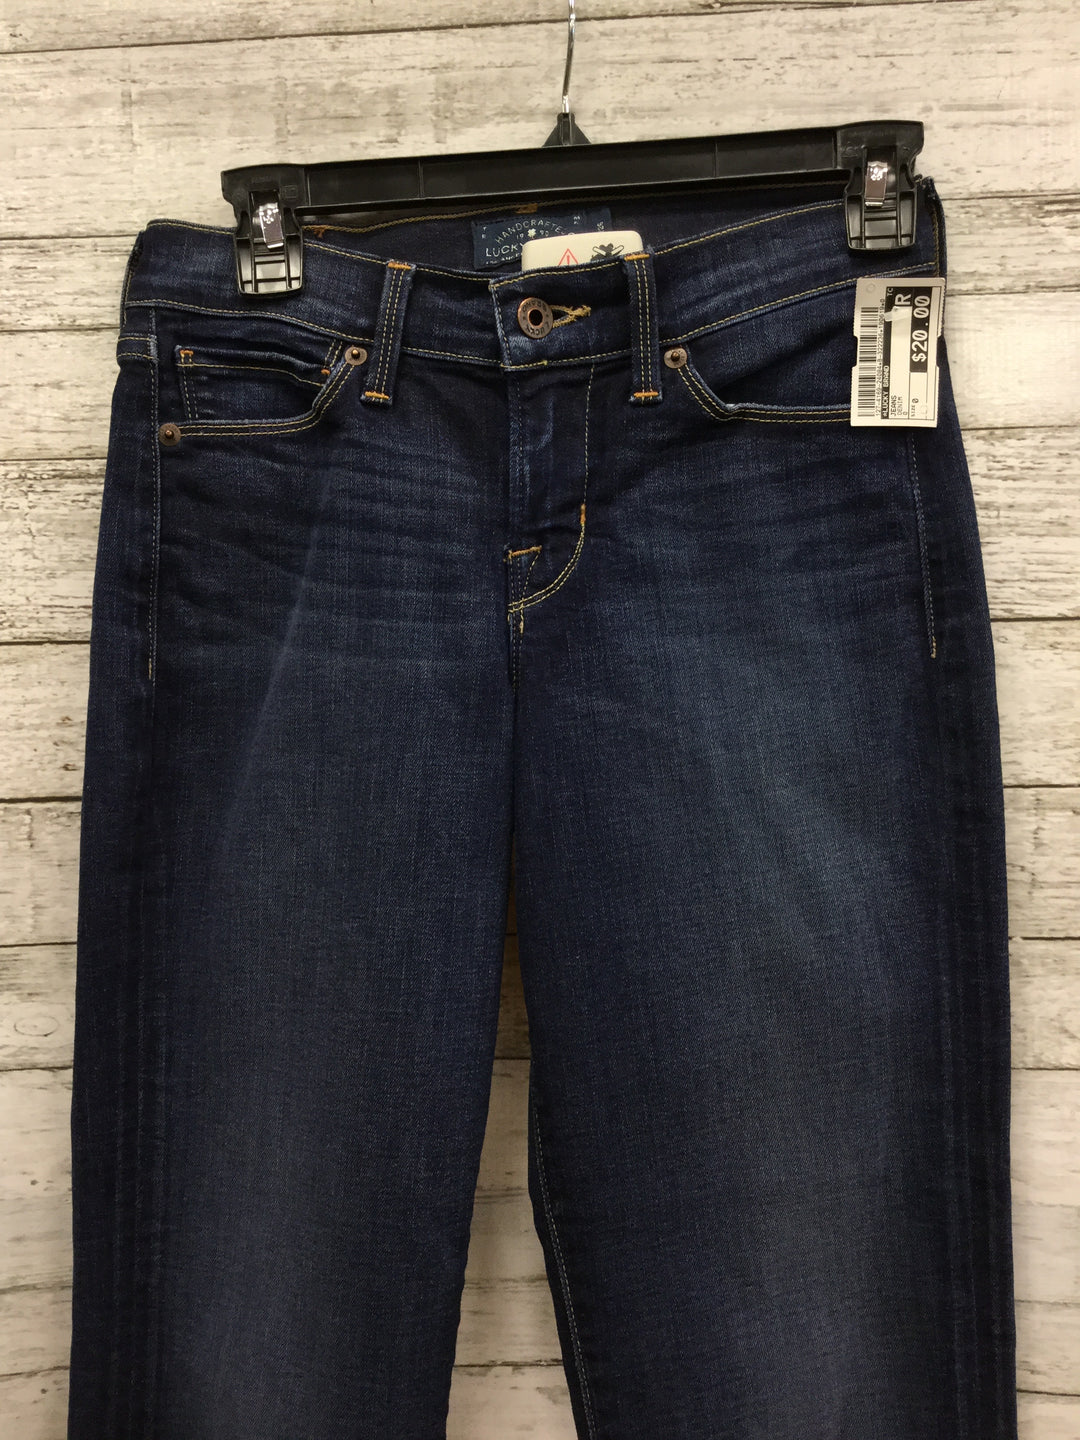 "Photo #1 - BRAND: LUCKY BRAND , STYLE: JEANS , COLOR: DENIM , SIZE: 0 , SKU: 127-4169-24084, , ""BROOKE CROP"" JEANS."